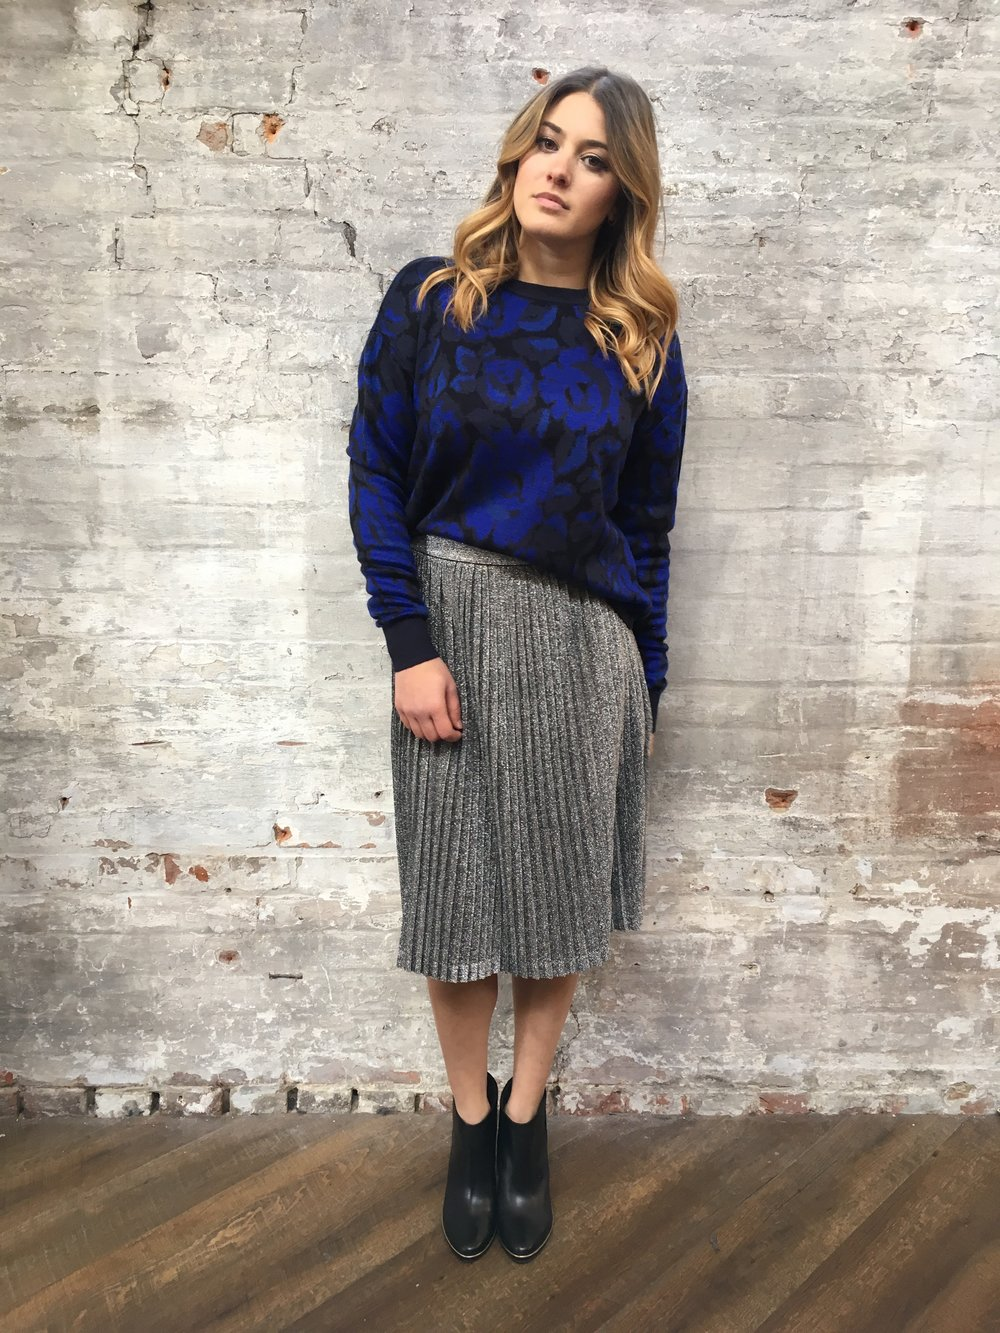 John & Jenn Louisa Dark Floral Sweater $165 Just Female Pleated Midi Skirt $130 Ted Baker Azalia Boots $325  This outfit is easy and comfortable but still hella chic